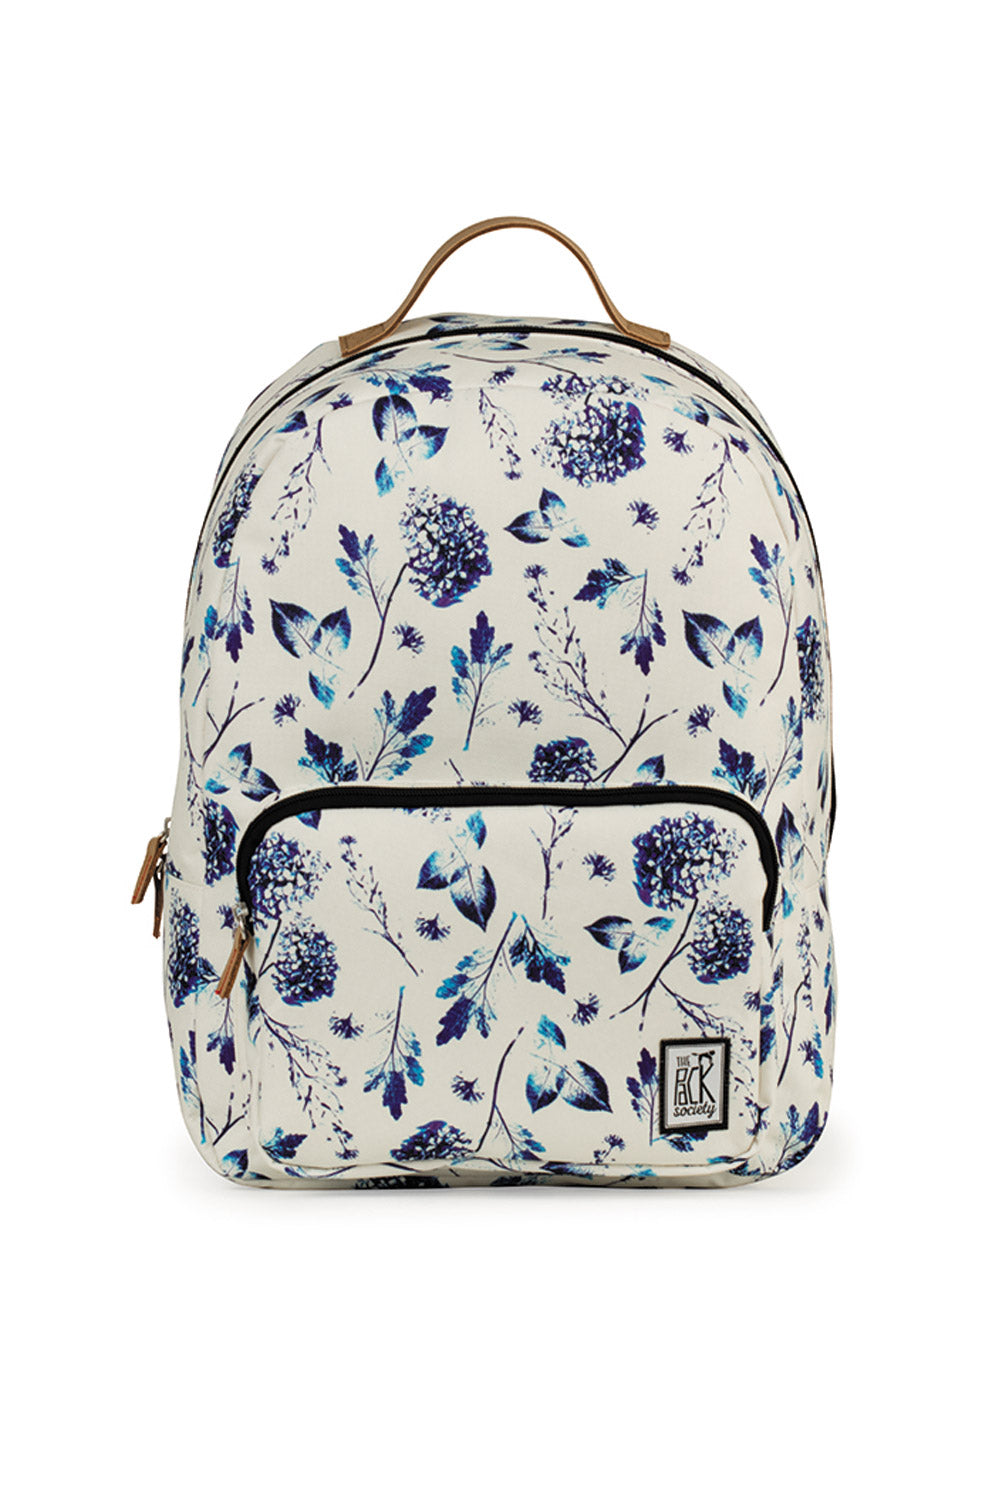 a4ee31b665f6 THE PACK SOCIETY - CLASSIC BACKPACK OFF WHITE BLUE FLOWERS - Ozon ...